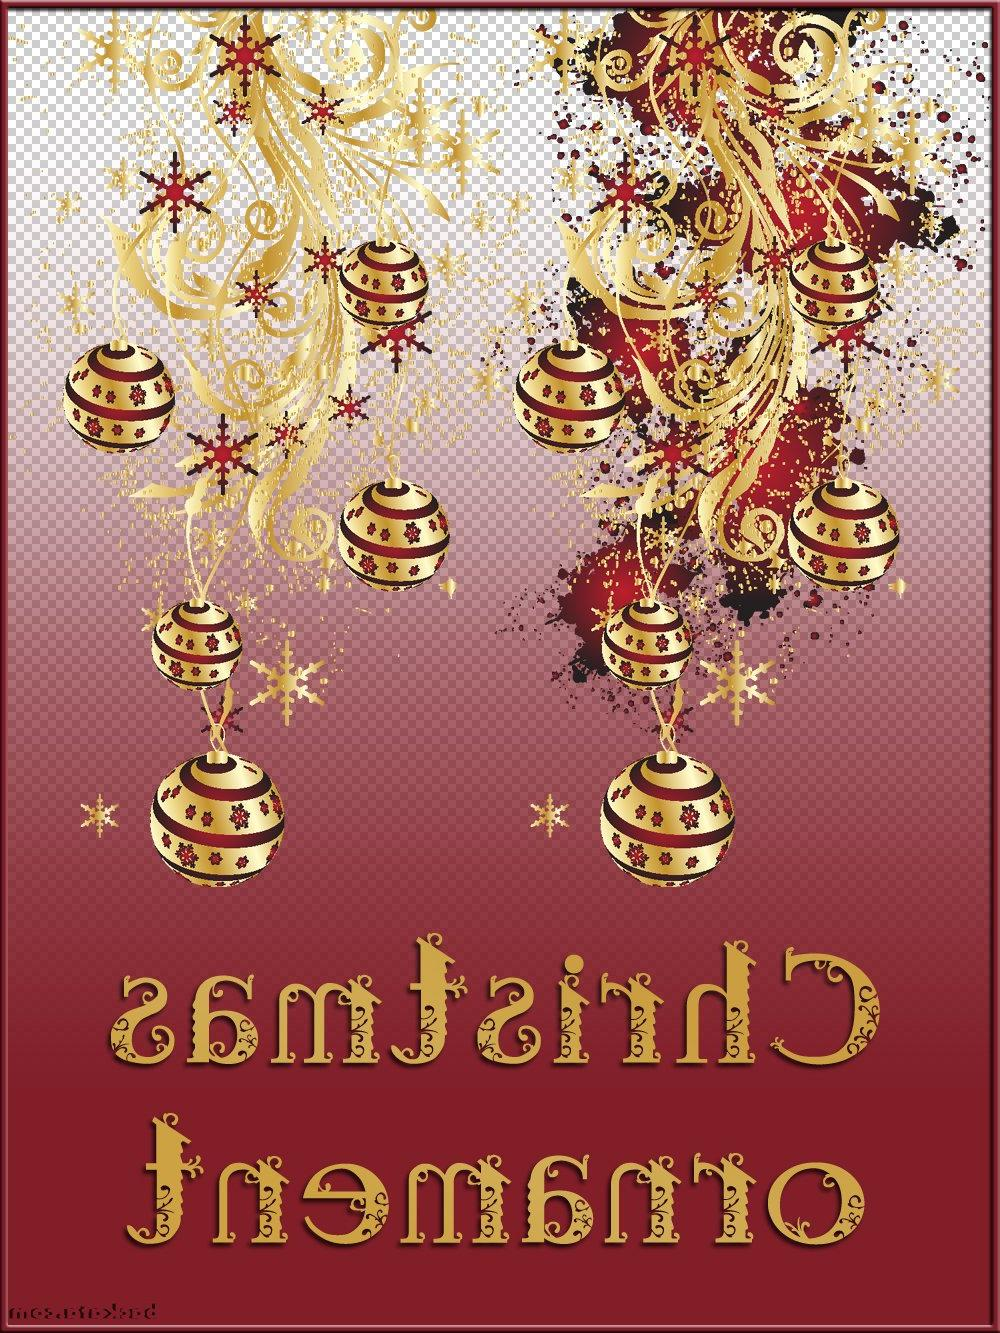 Christmas ornament - Clipart